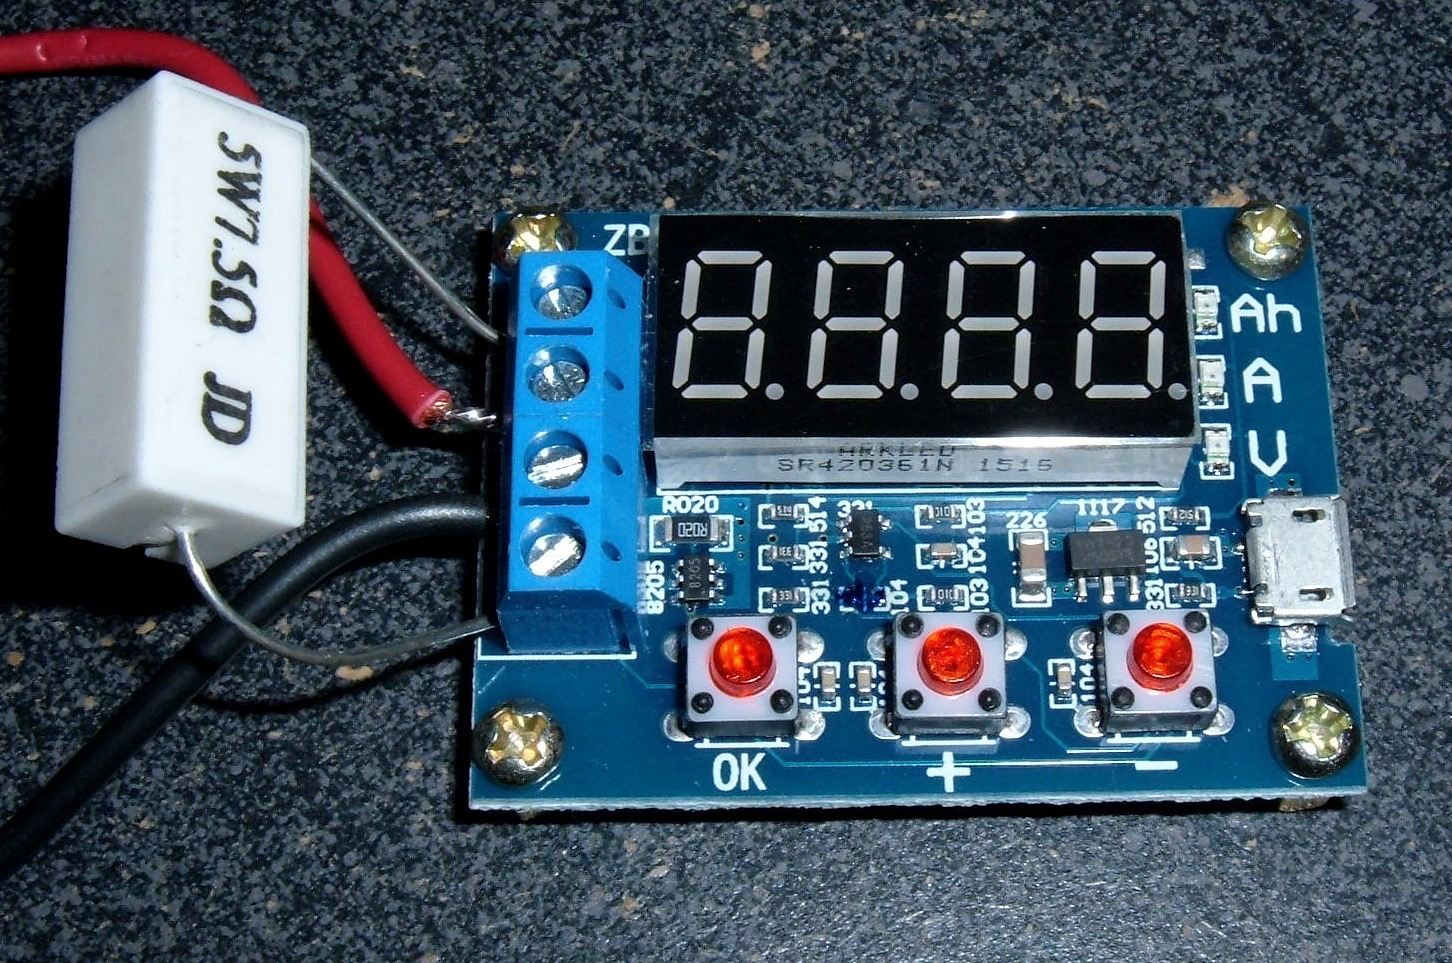 Diy Resistive Load Bank Syonyk S Project Blog Zb2l3 V2 Zhiyu Battery Tester